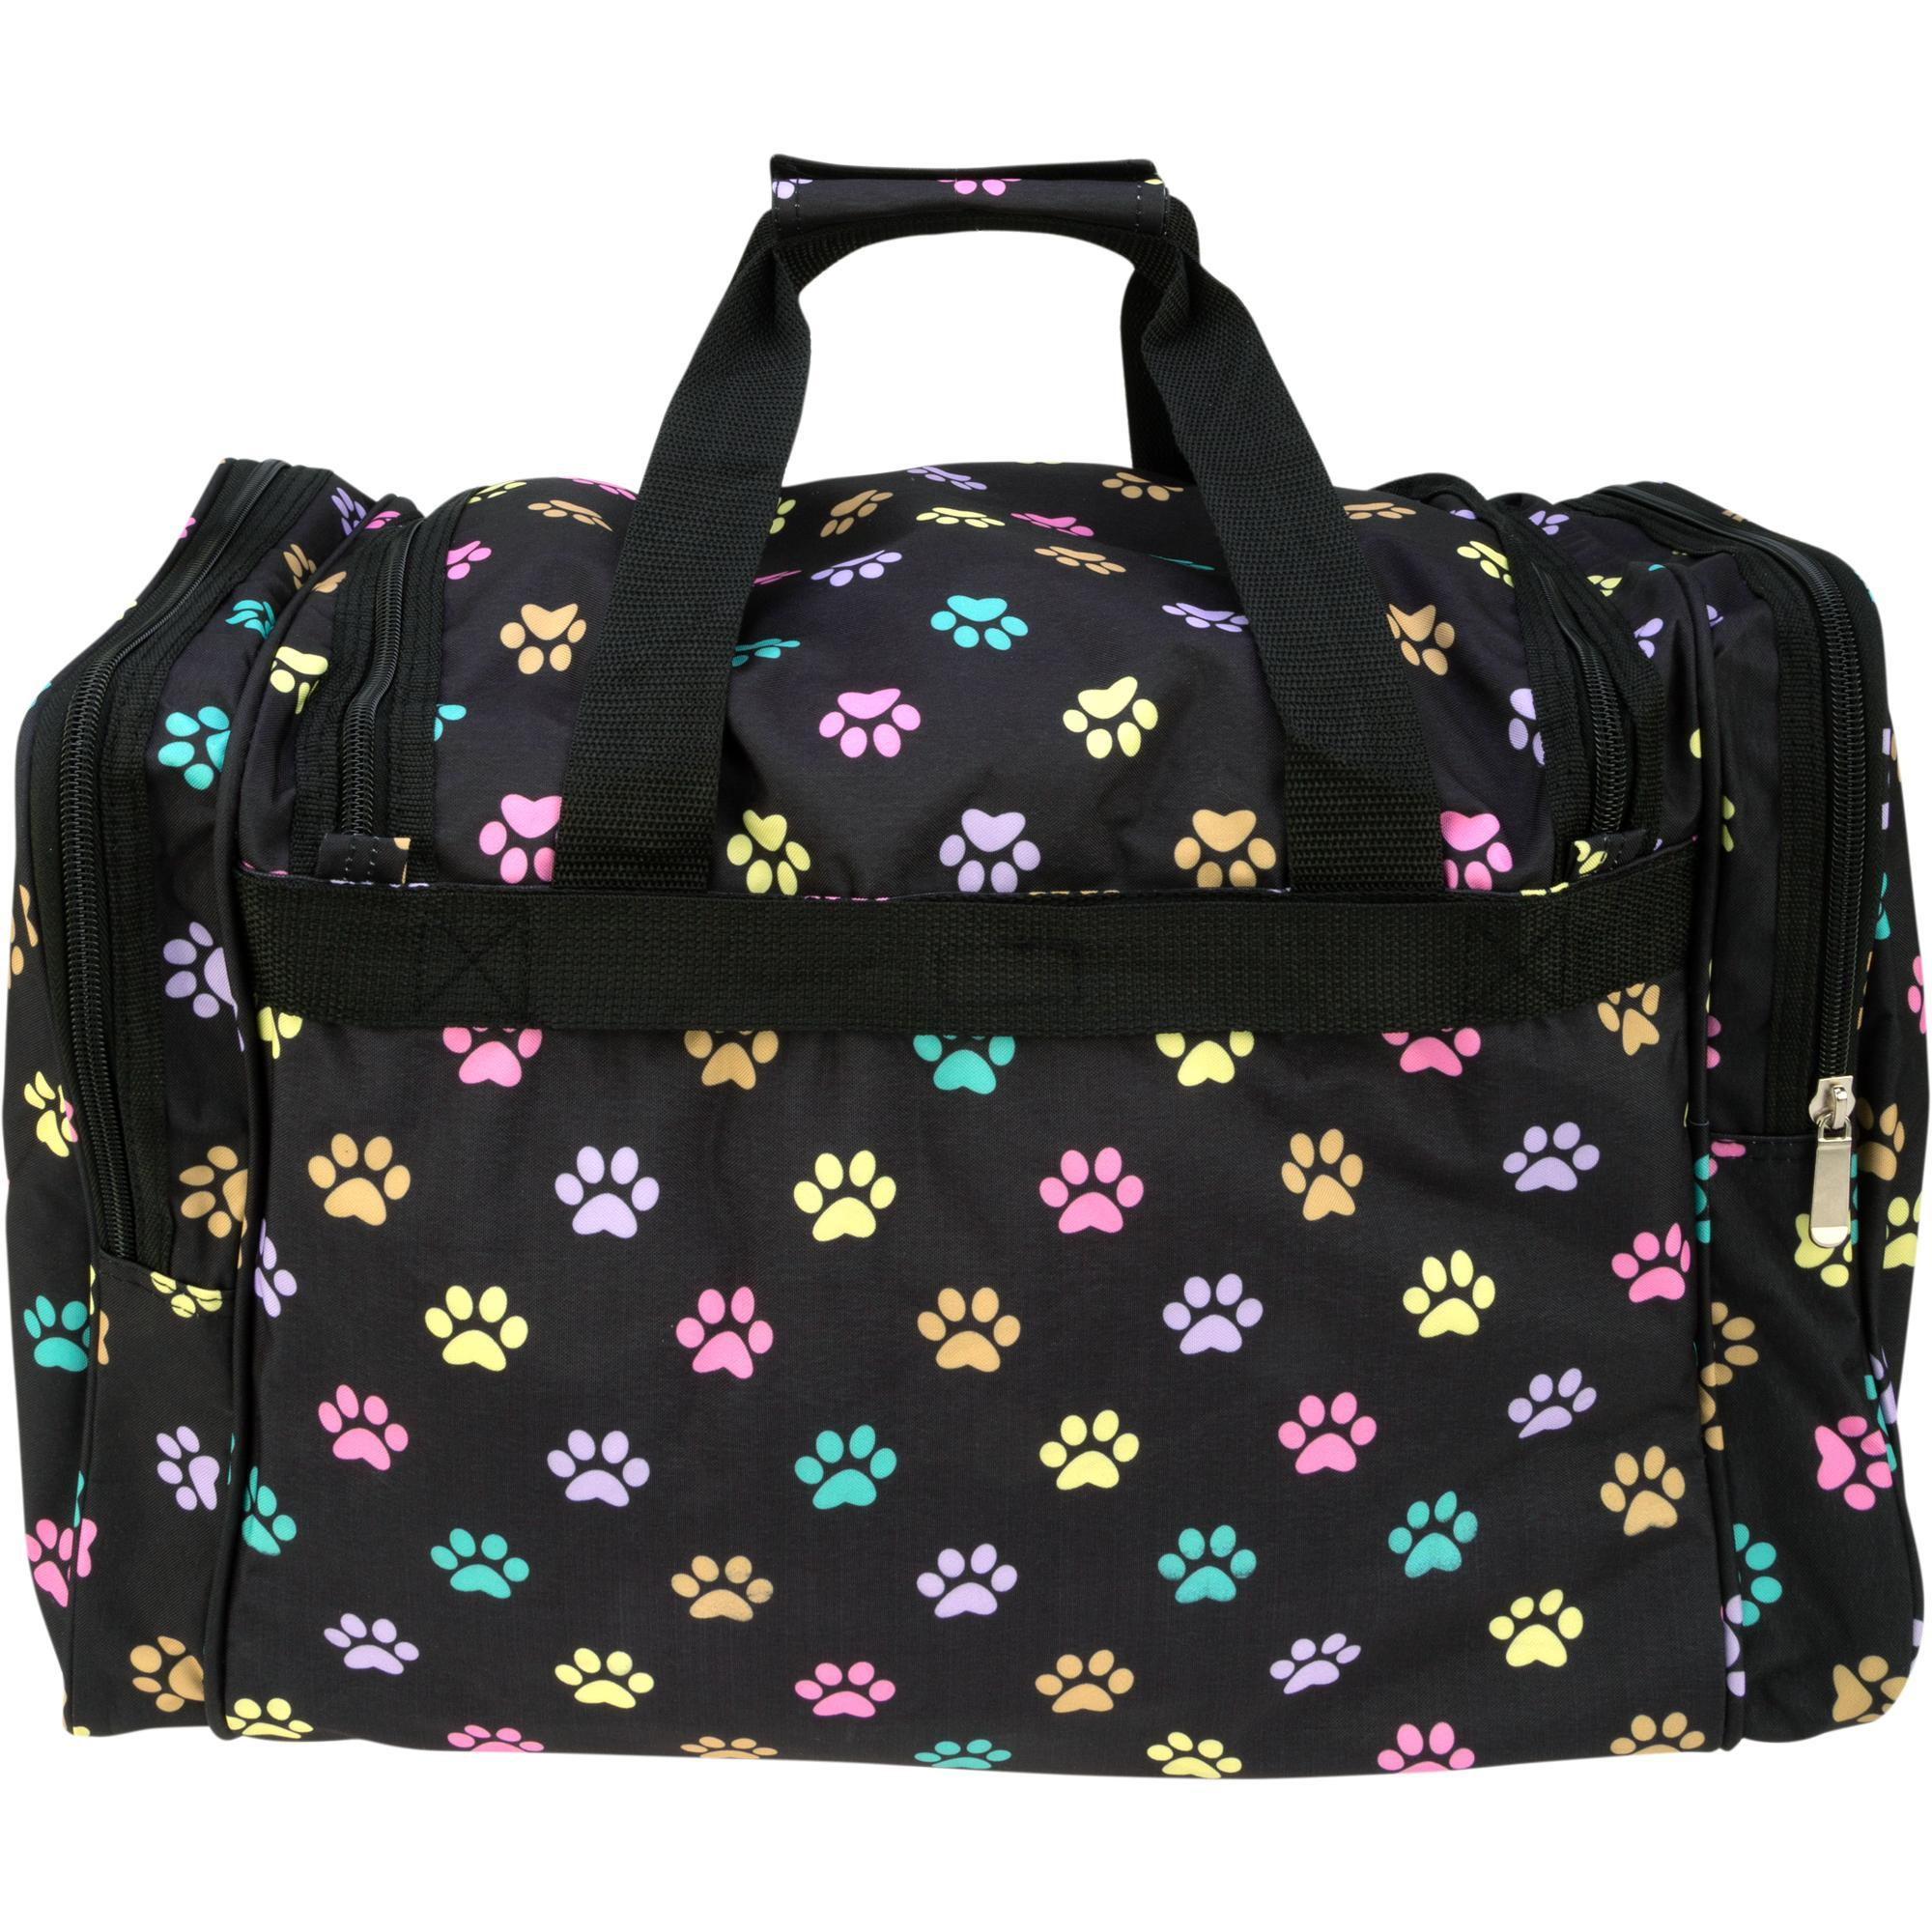 d02a30815d20 I Love Paw Prints Travel Bag| The Animal Rescue Site